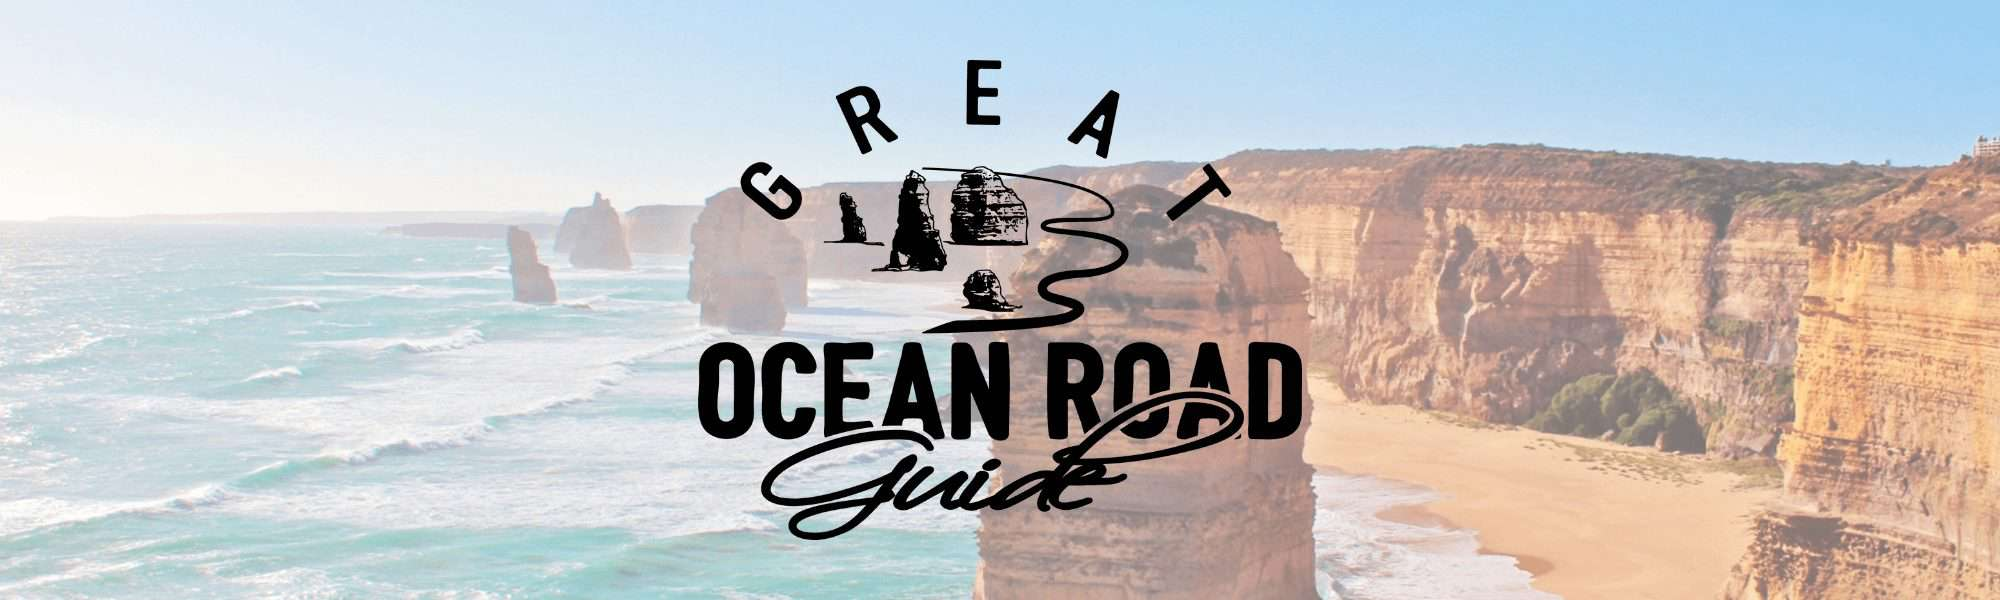 GreatOceanRoadGuide.com.au Header Image of 12 Apostles with site logo overlayed